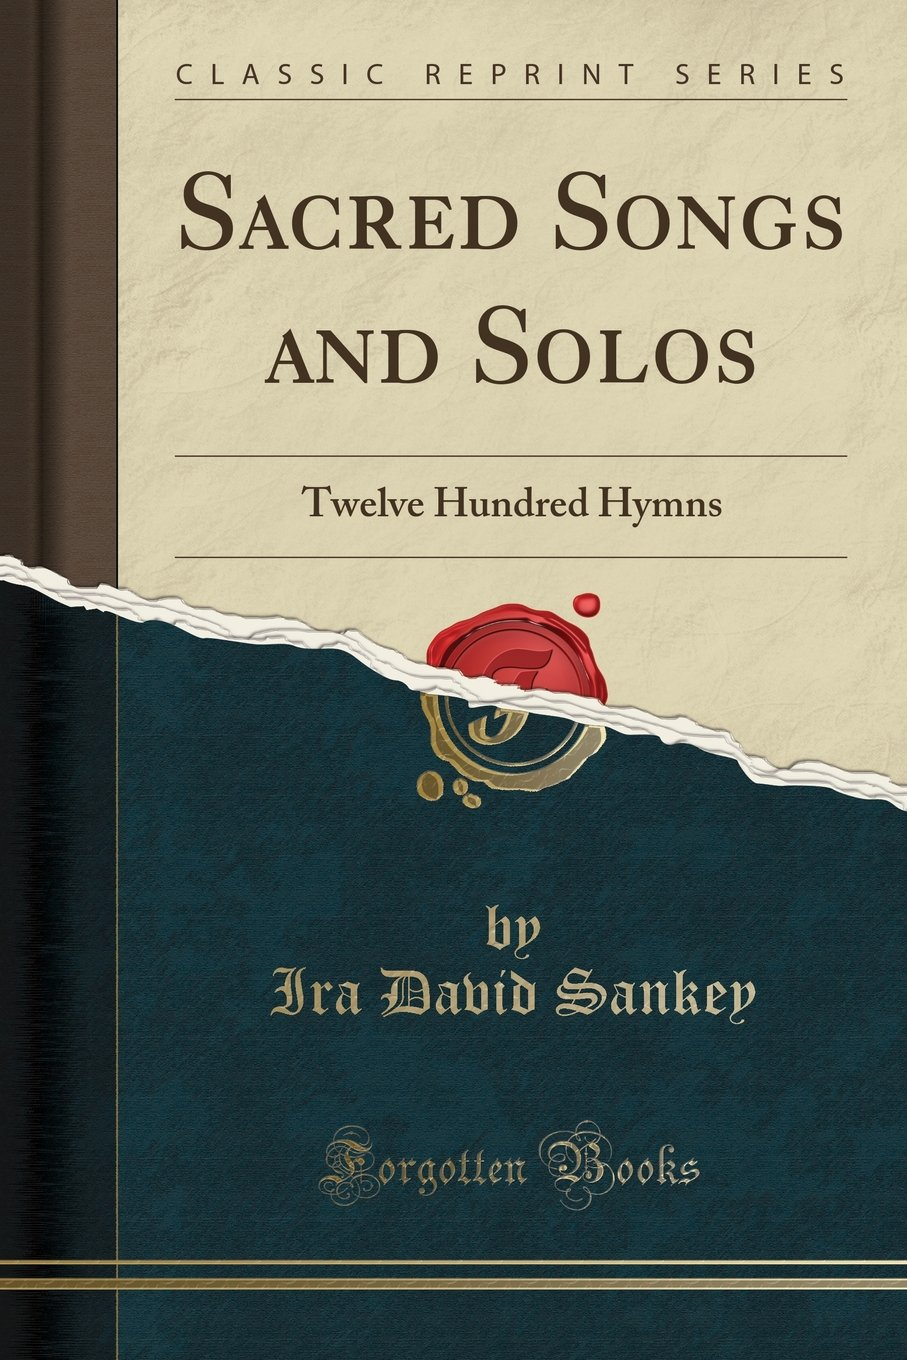 sacred-songs-and-solos-twelve-hundred-hymns-classic-reprint